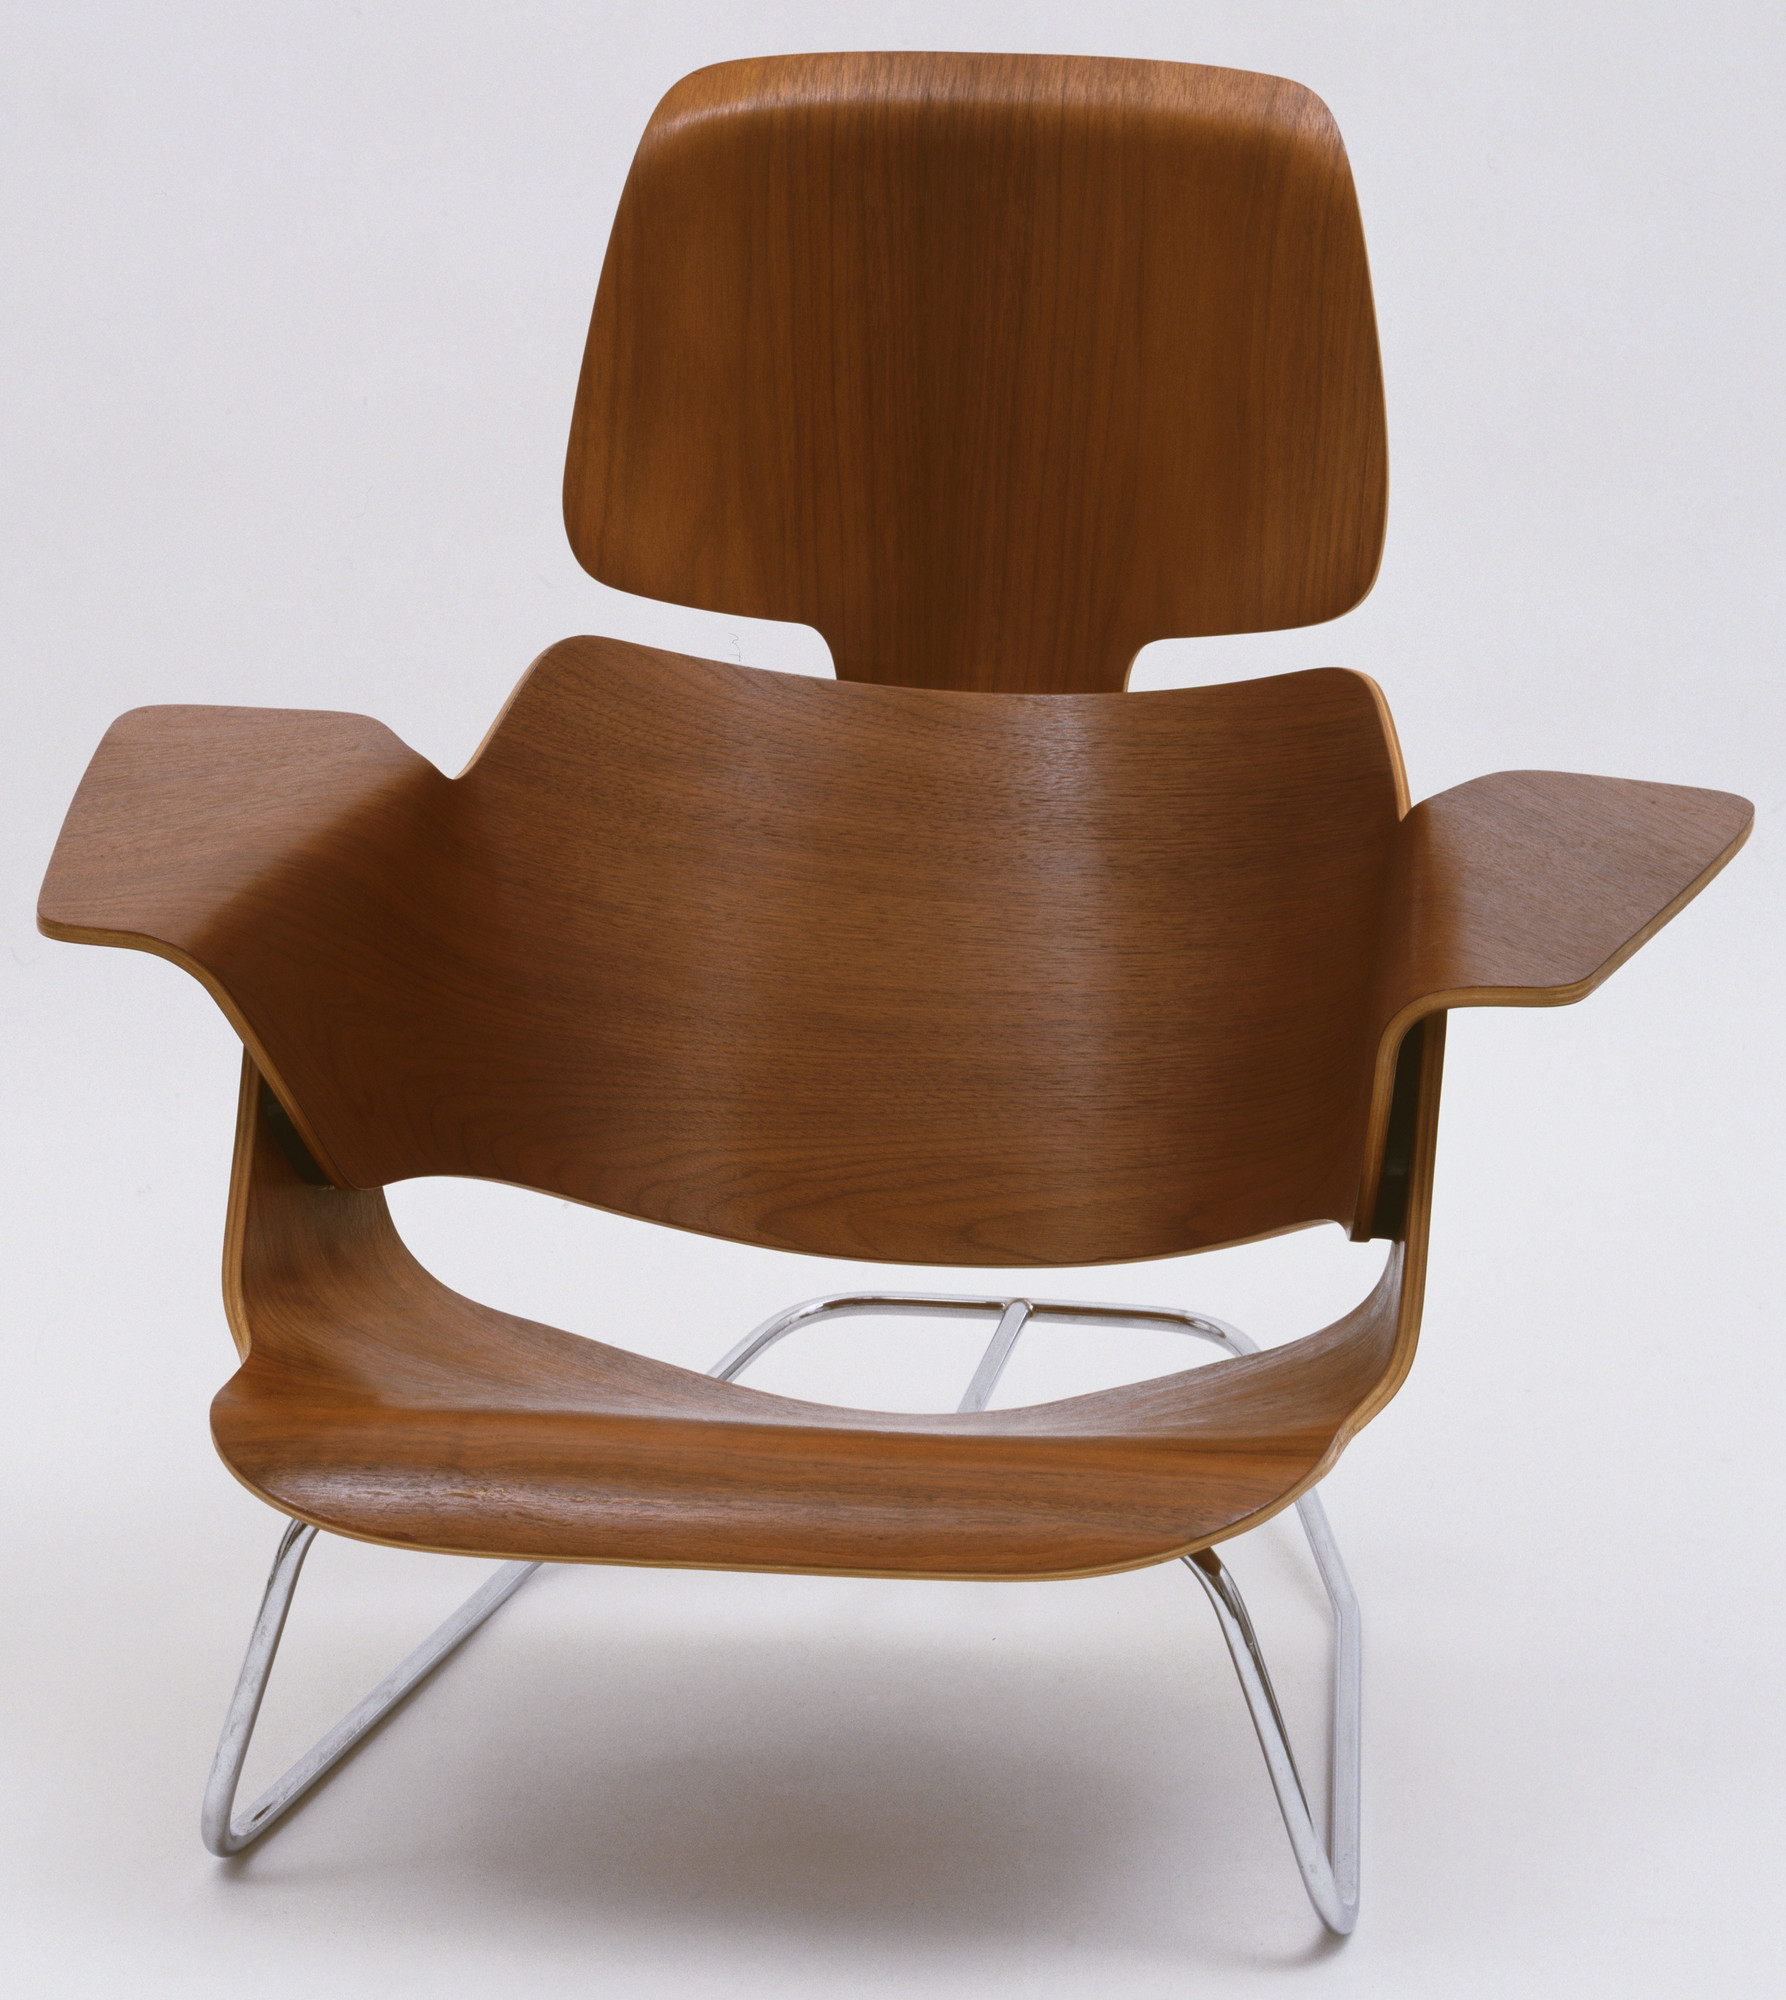 Strange Charles Eames Ray Eames Experimental Lounge Chair C 1944 Uwap Interior Chair Design Uwaporg